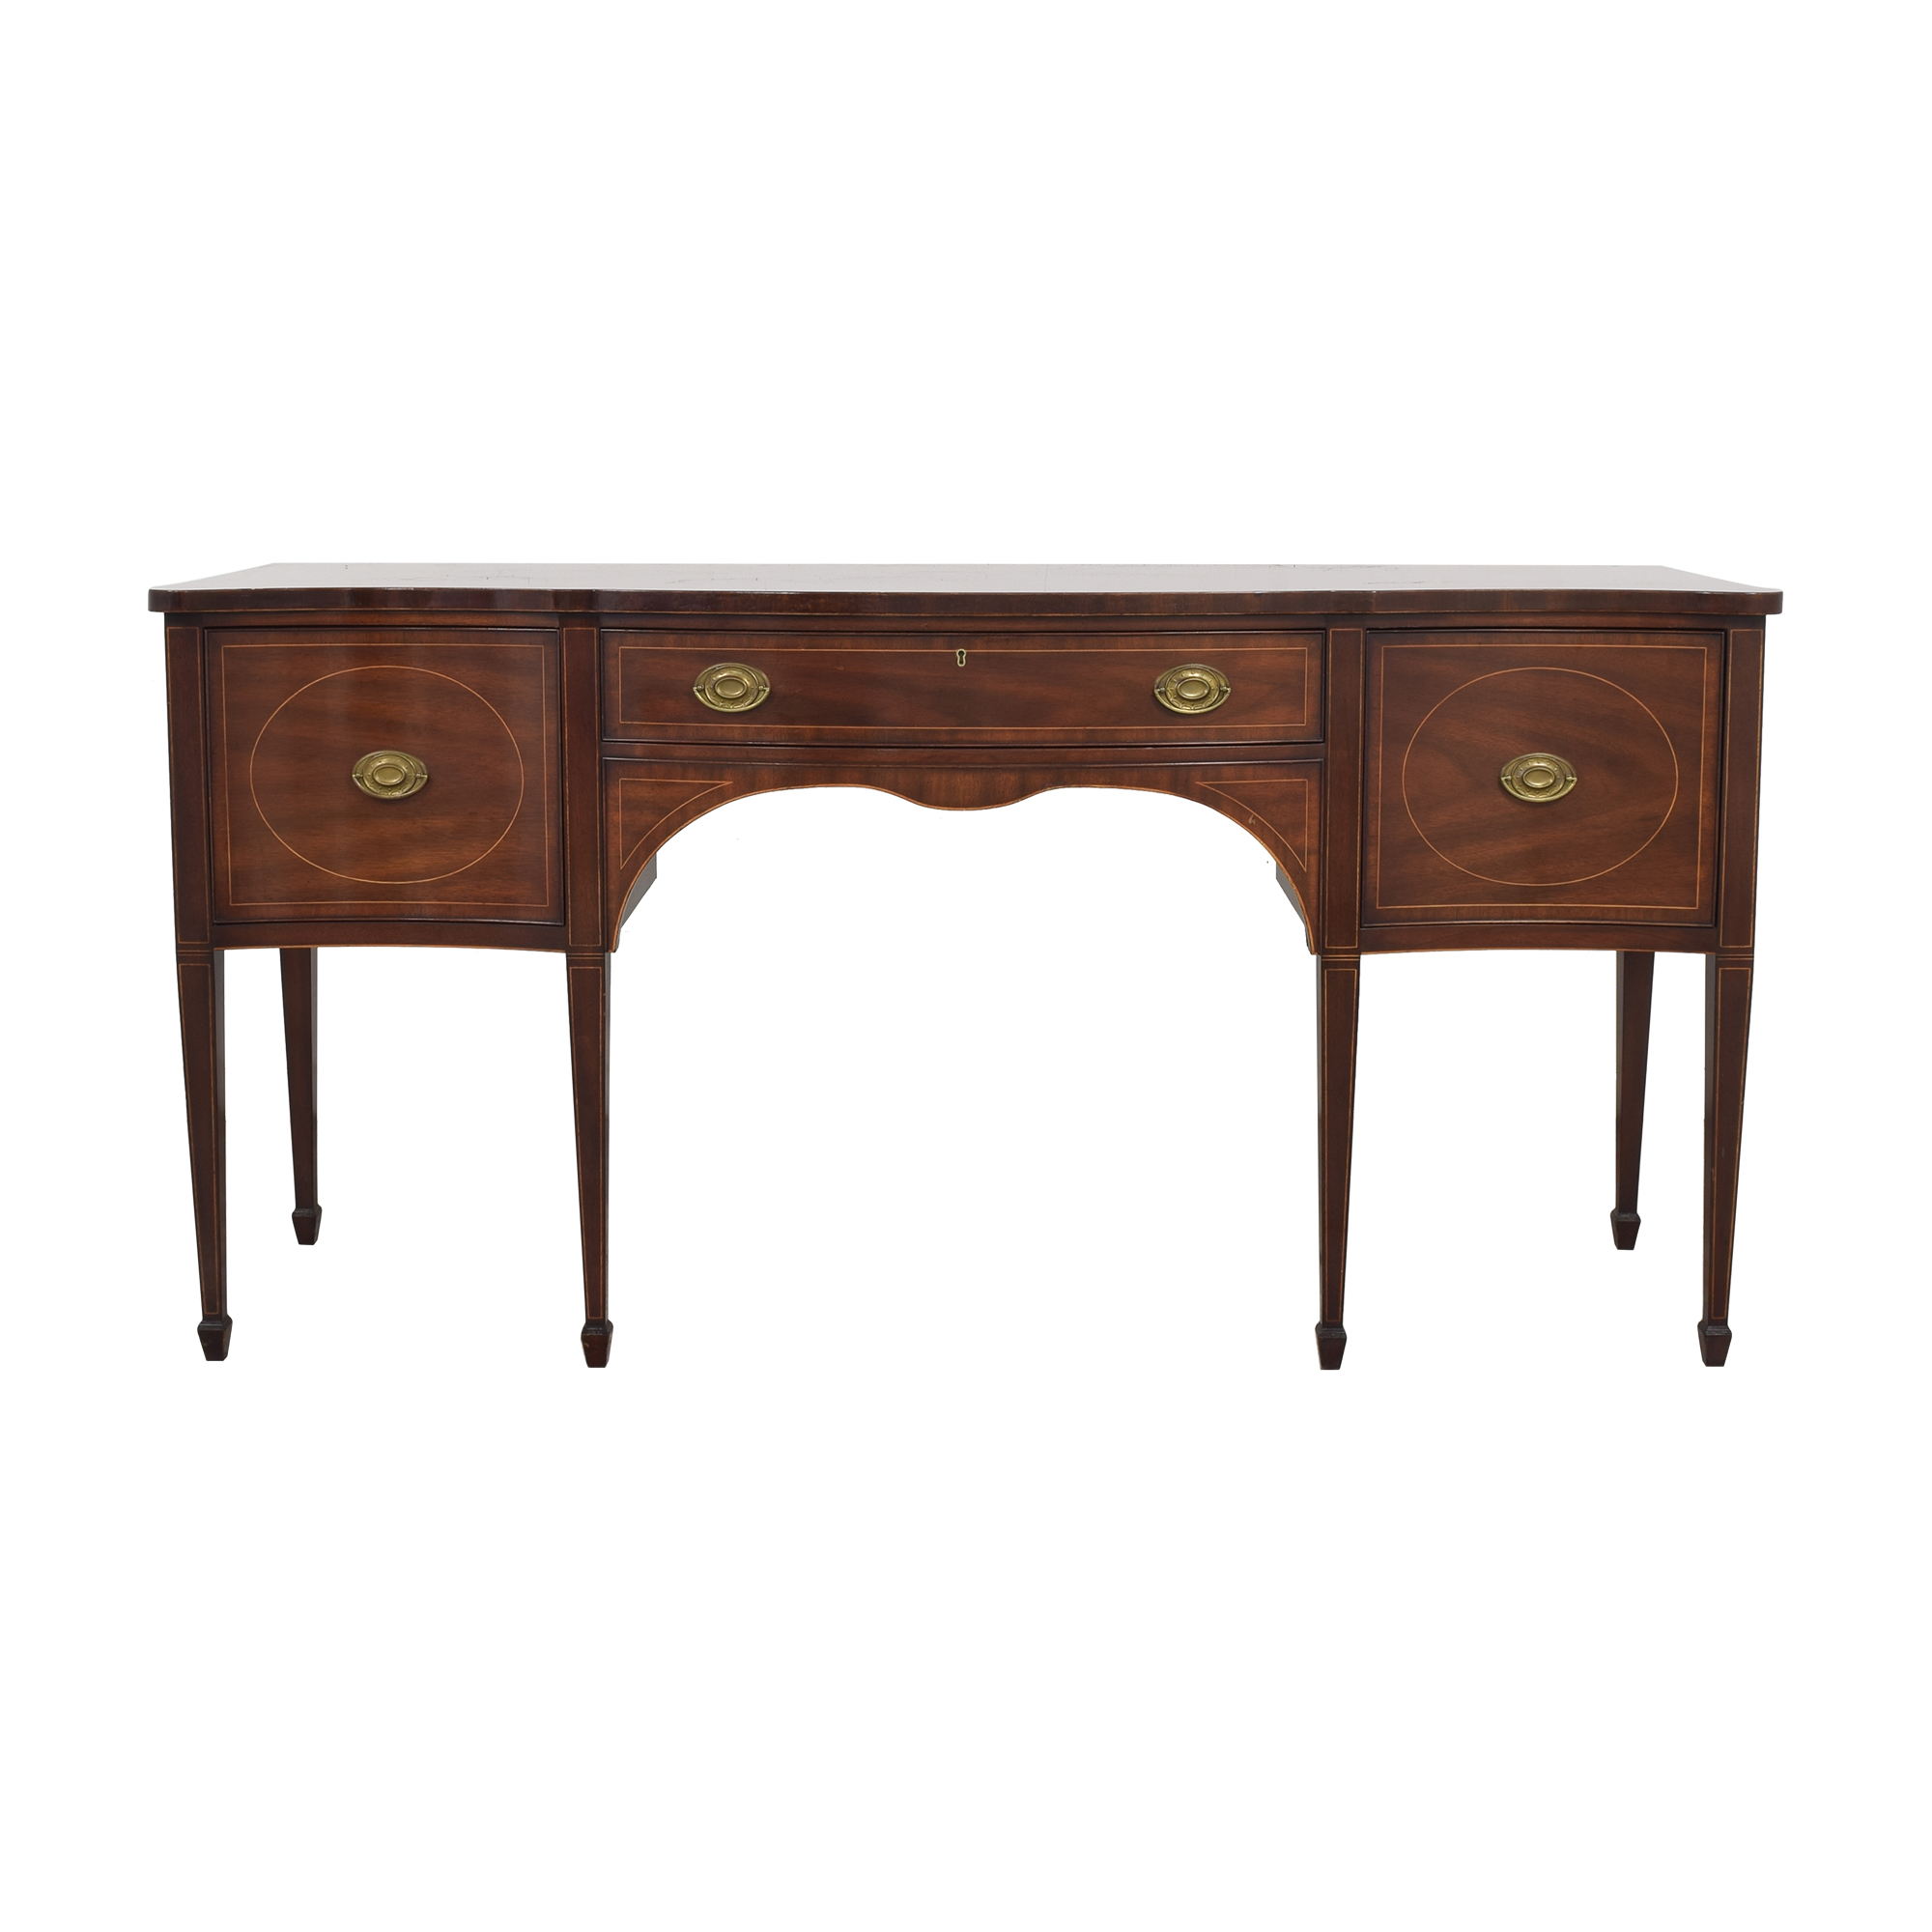 Kittinger Furniture Kittinger Dining Sideboard second hand